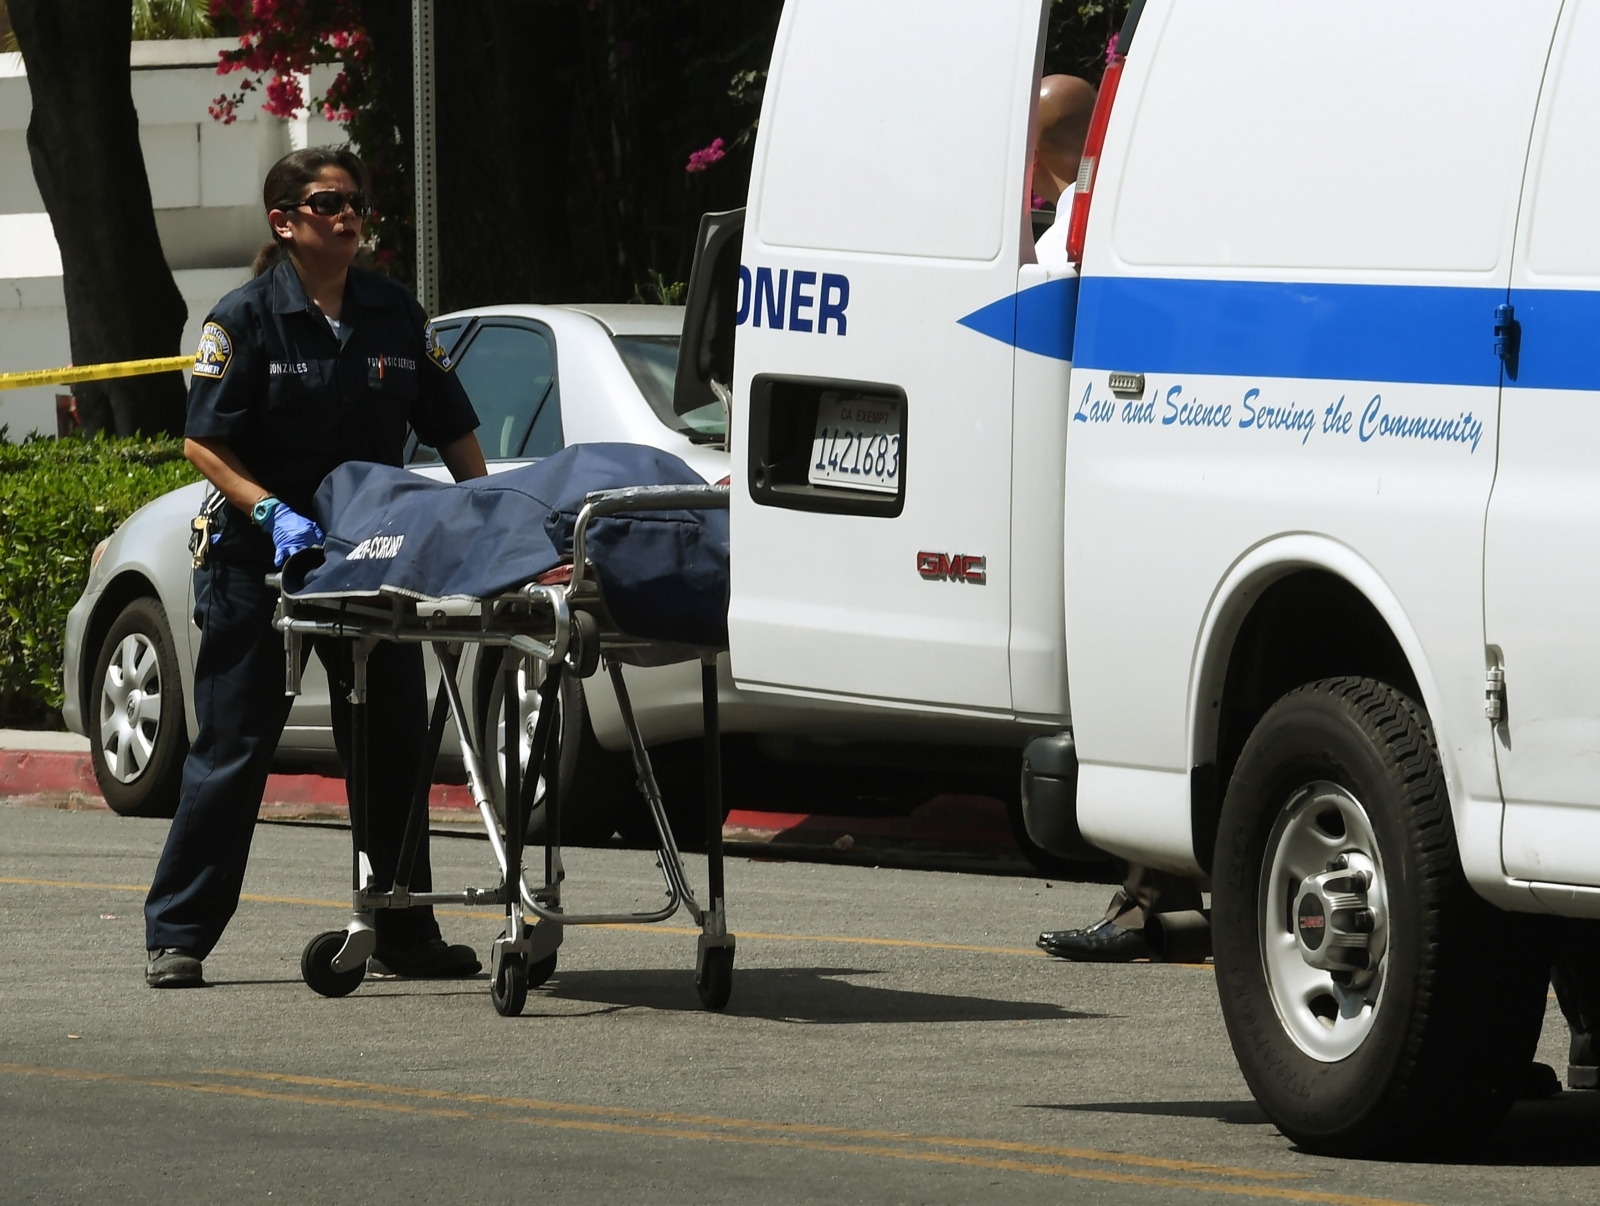 Man fires gun, kills himself outside Chinese consulate in LA's Filipinotown